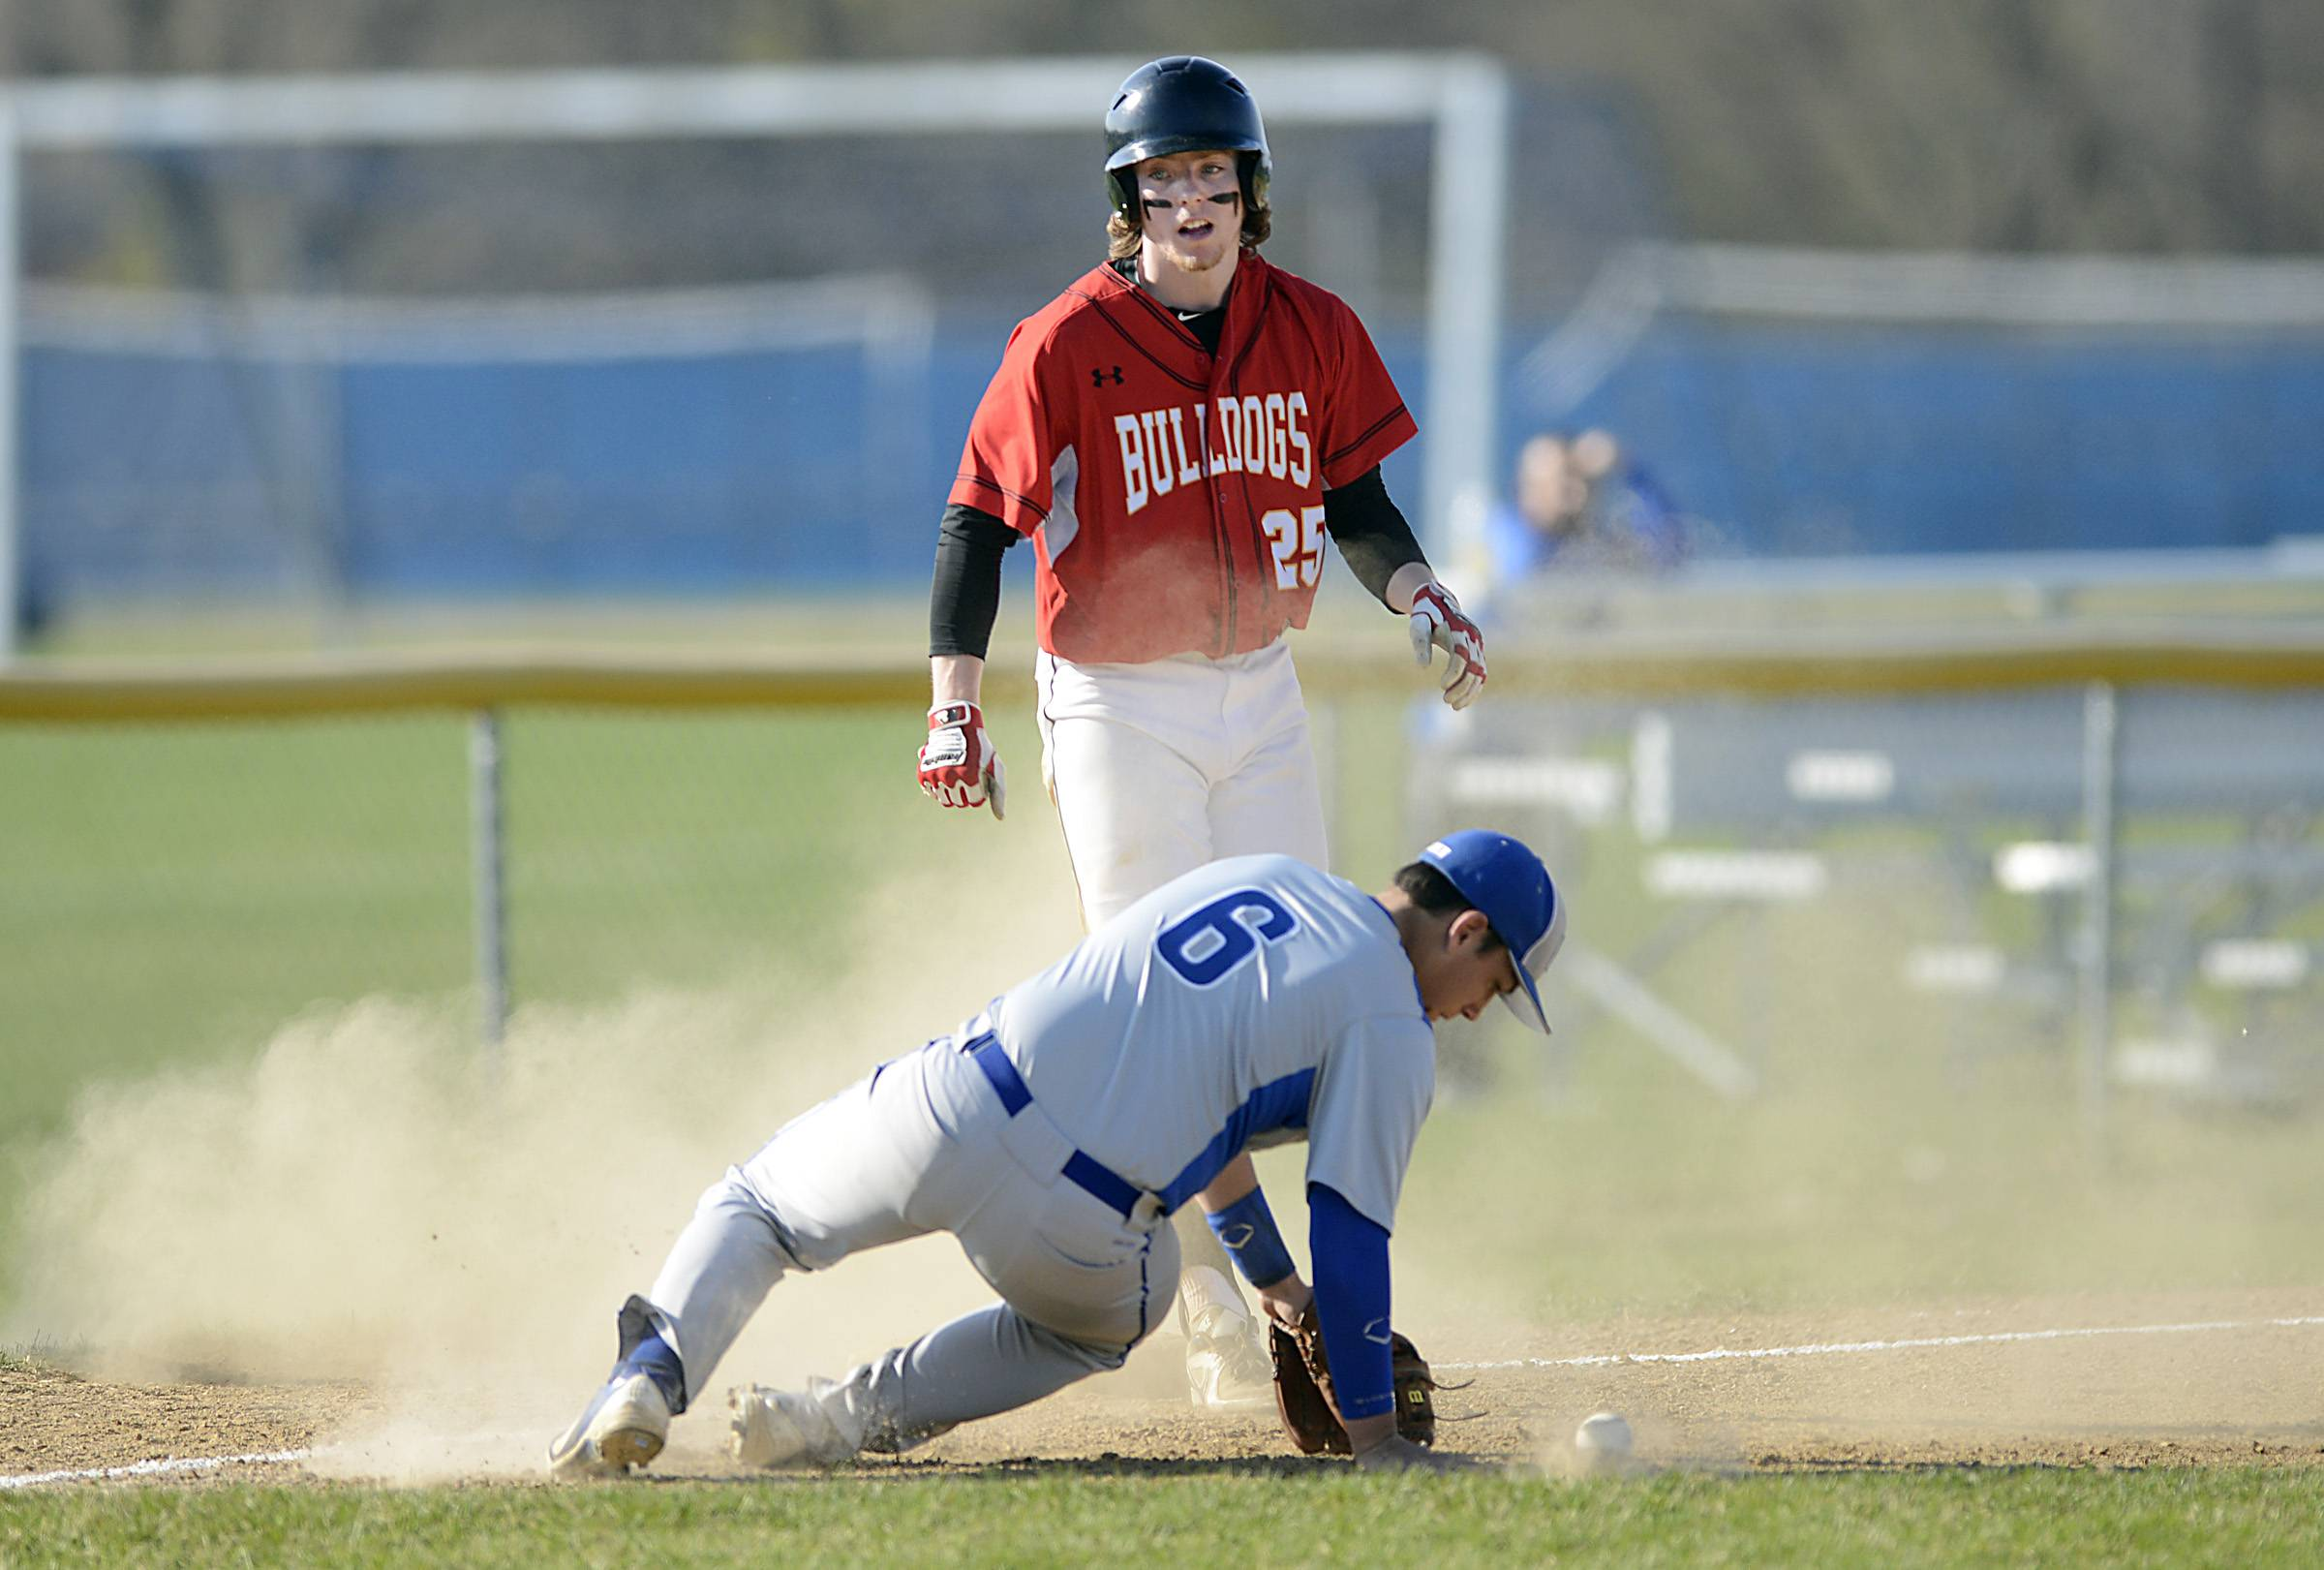 Larkin third baseman Dan Lenz tries to field a throw from the outfield as Batavia's Steven Busby stands at the bag with a triple in the second inning Thursday in Elgin.